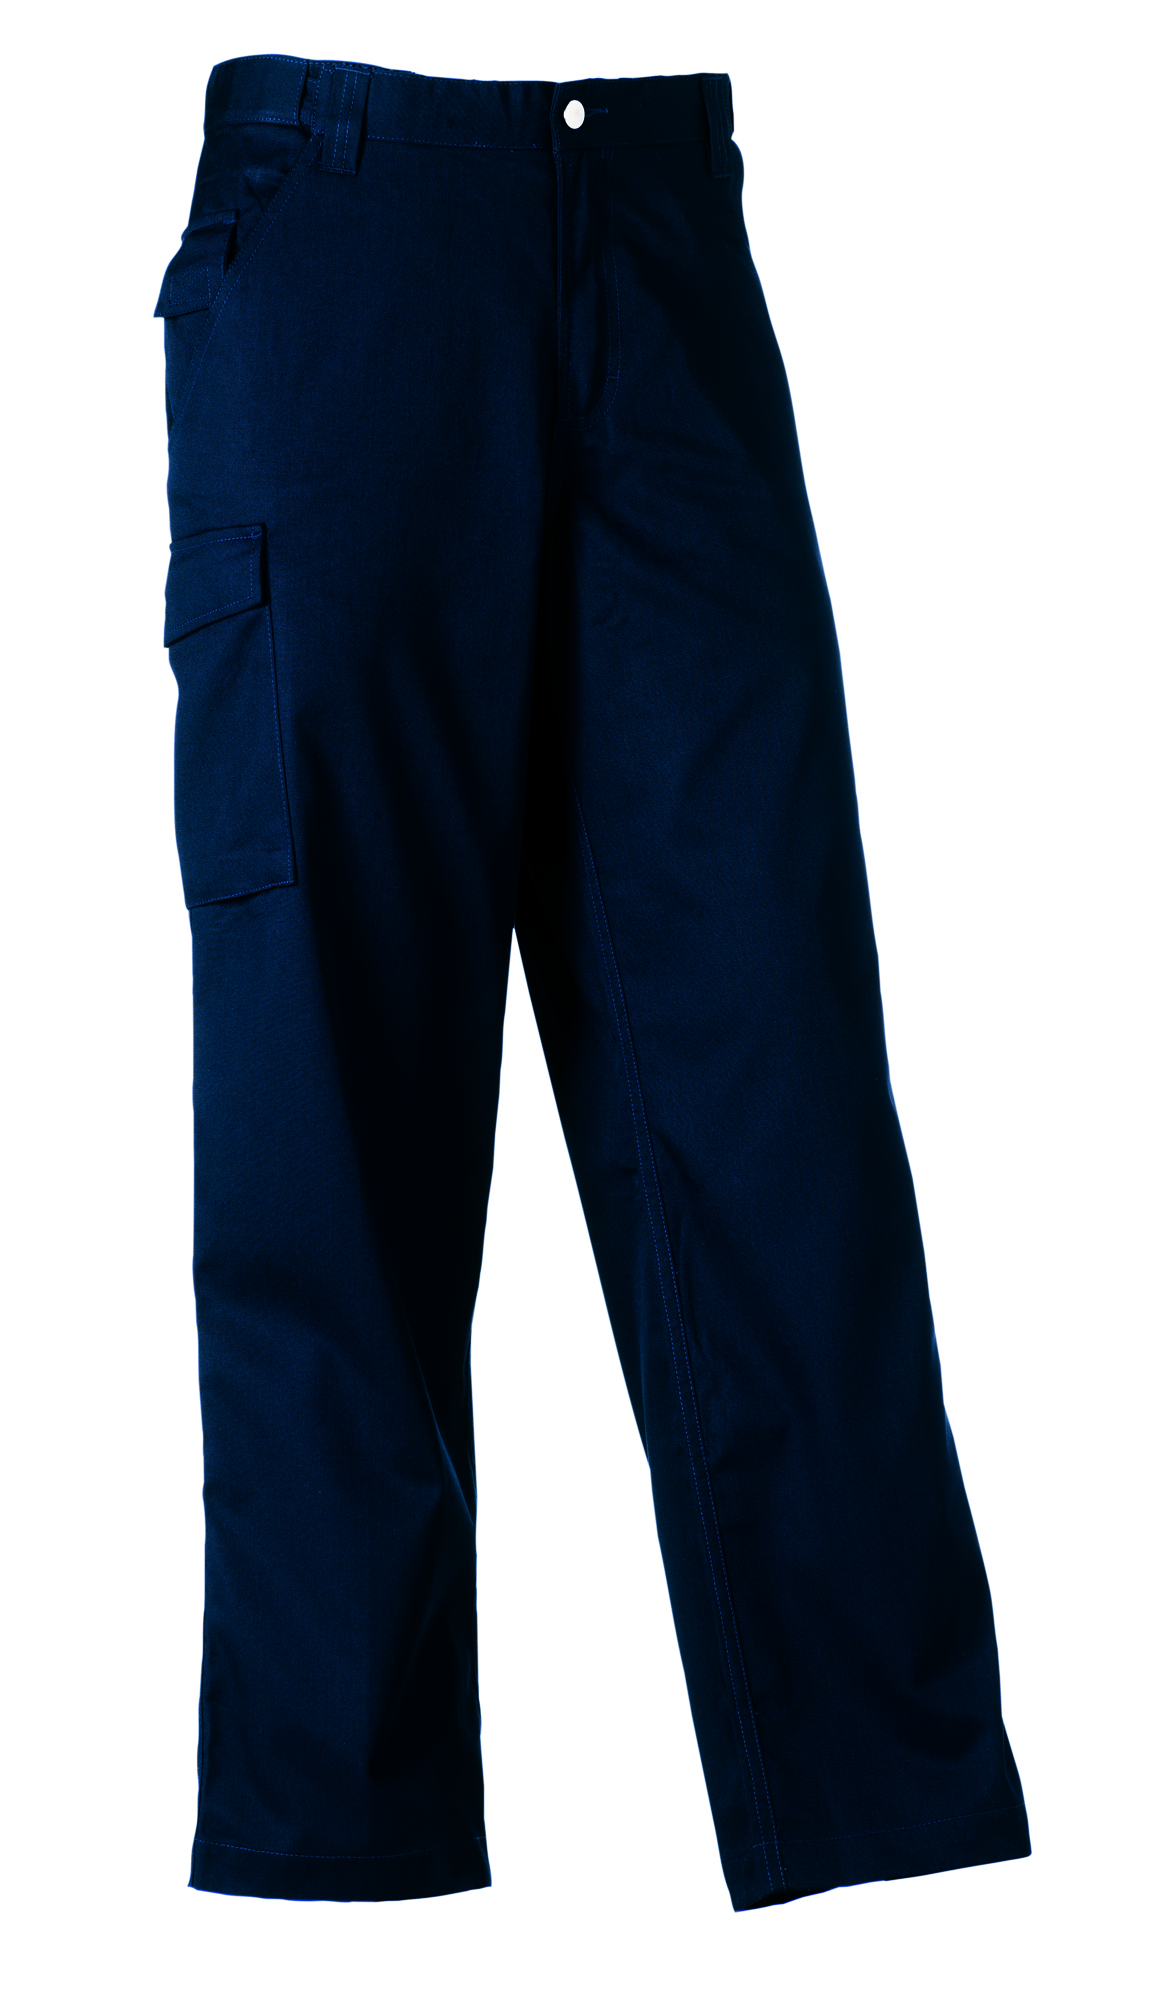 Polycotton Twill Trousers - French Navy - 38-32